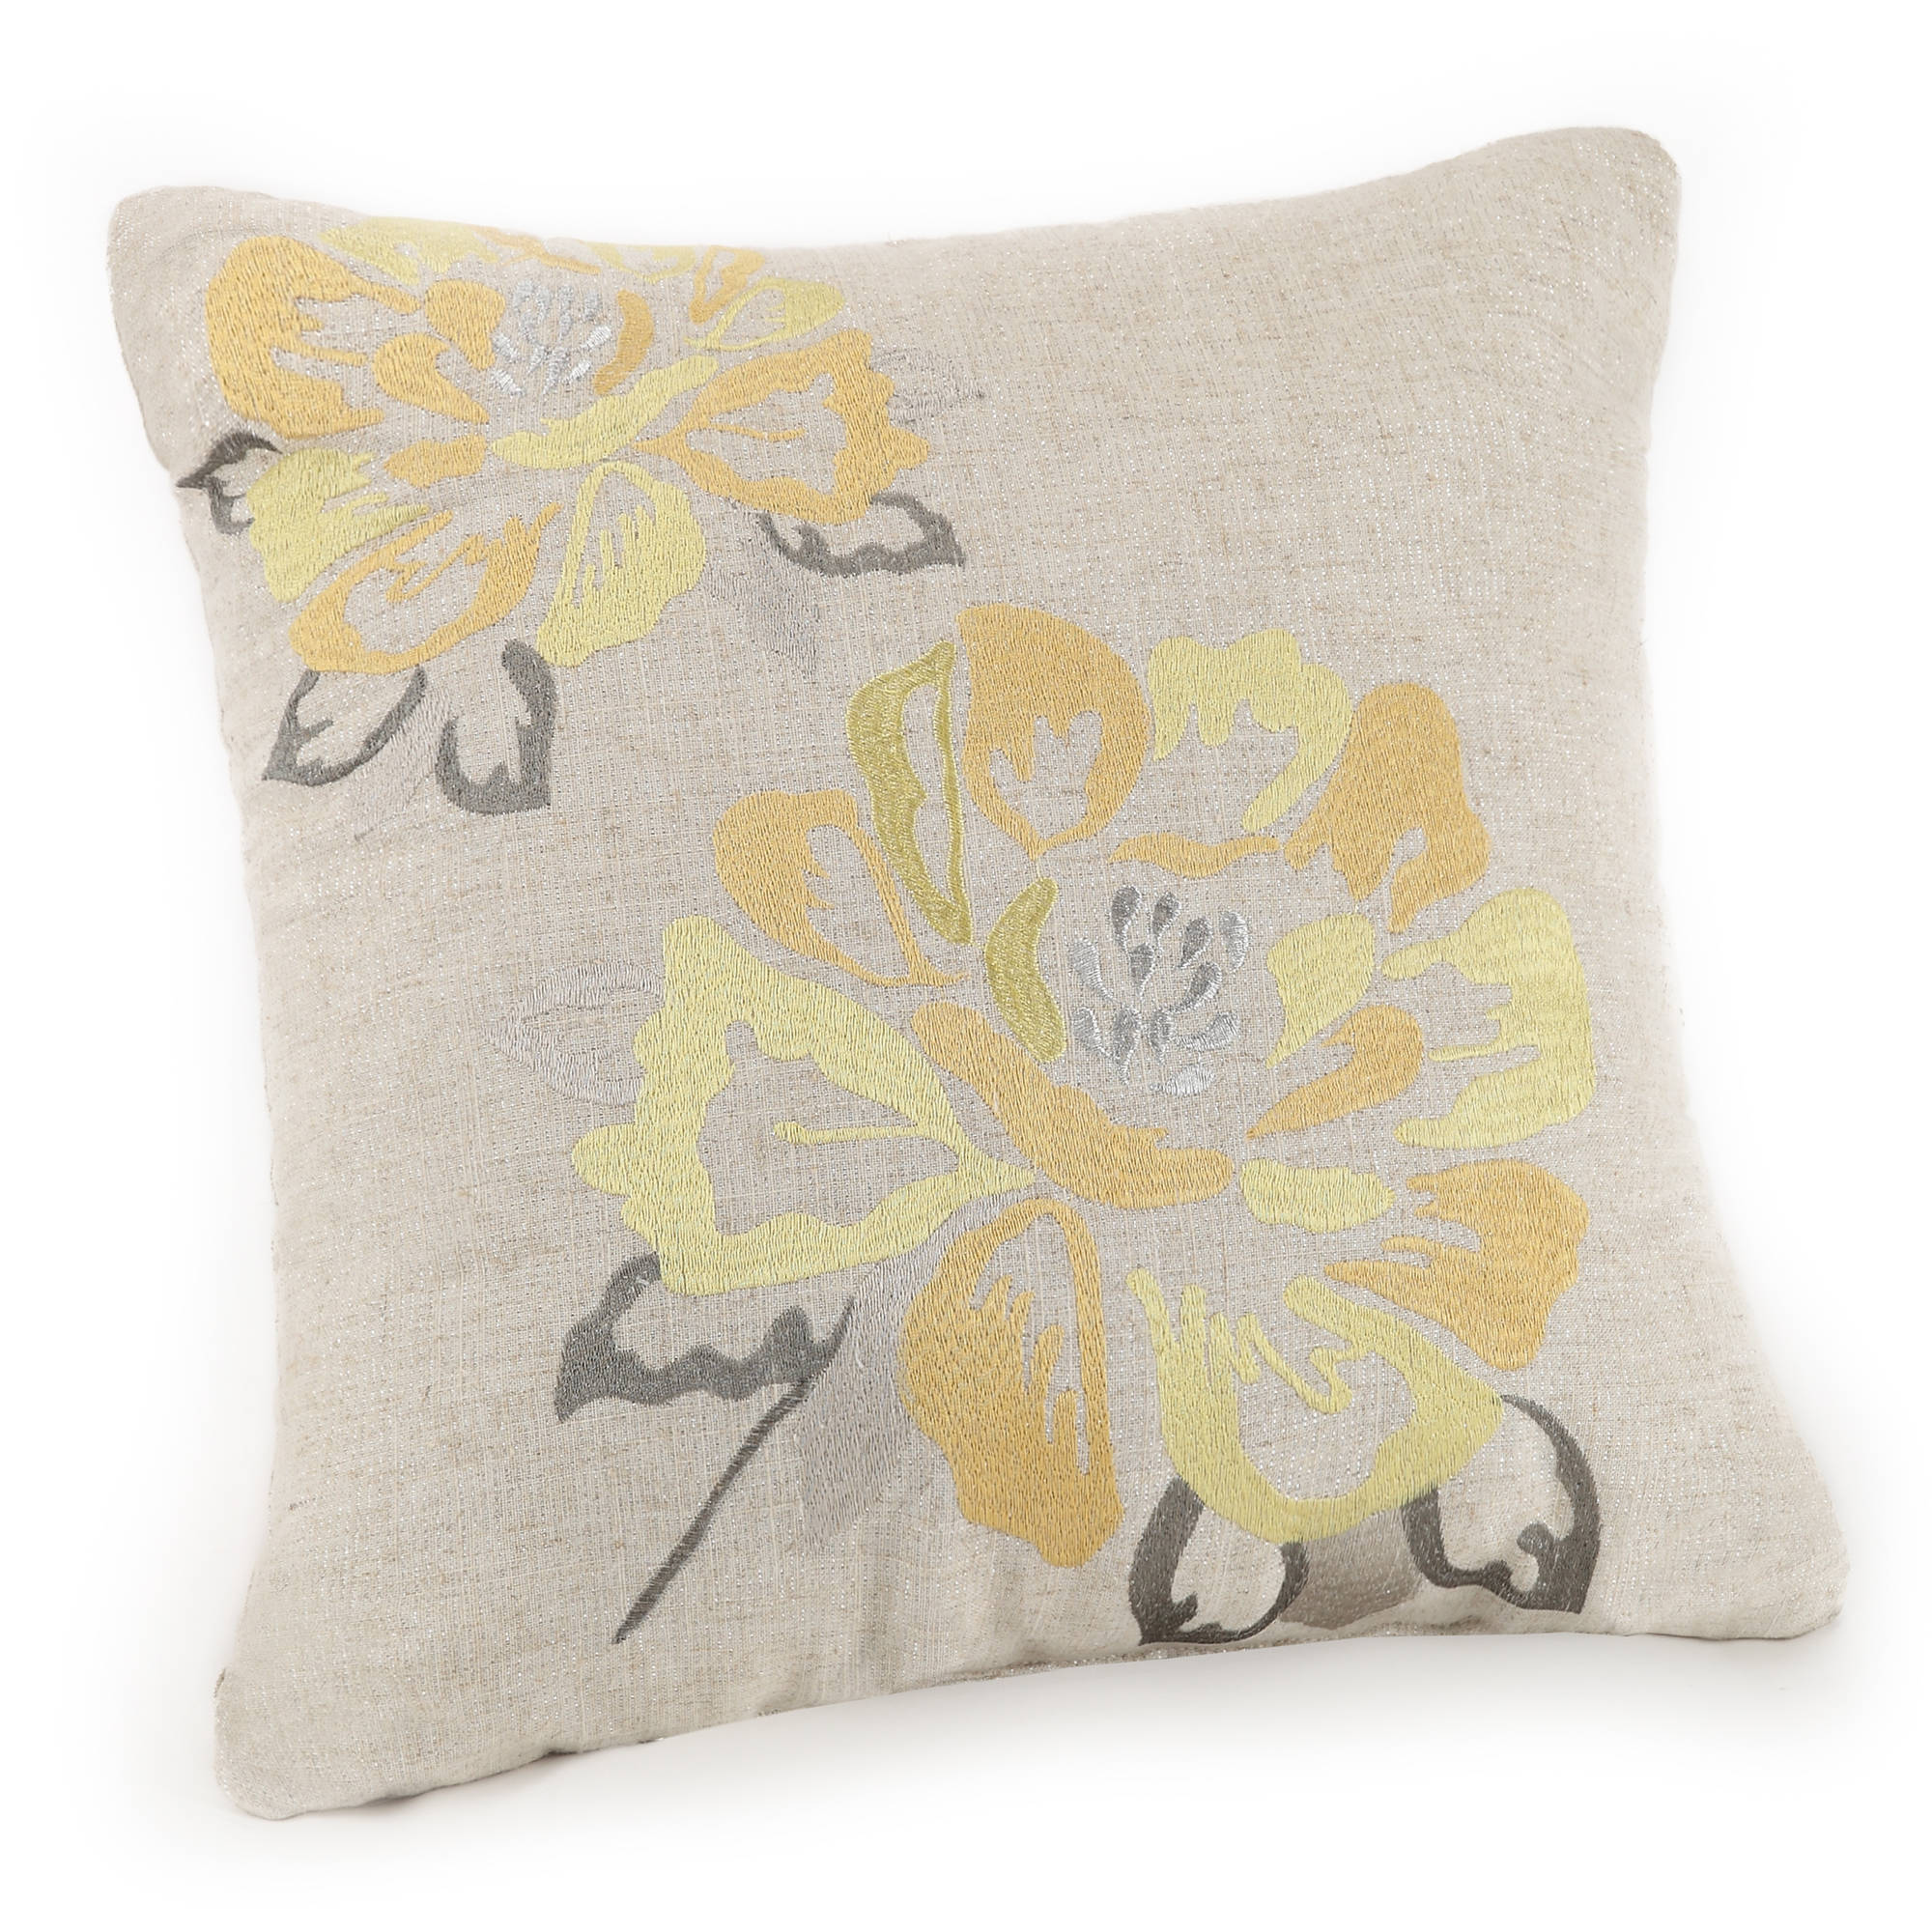 Better Homes & Gardens Yellow Blossom Square Decorative Pillow by Better Homes and Gardens